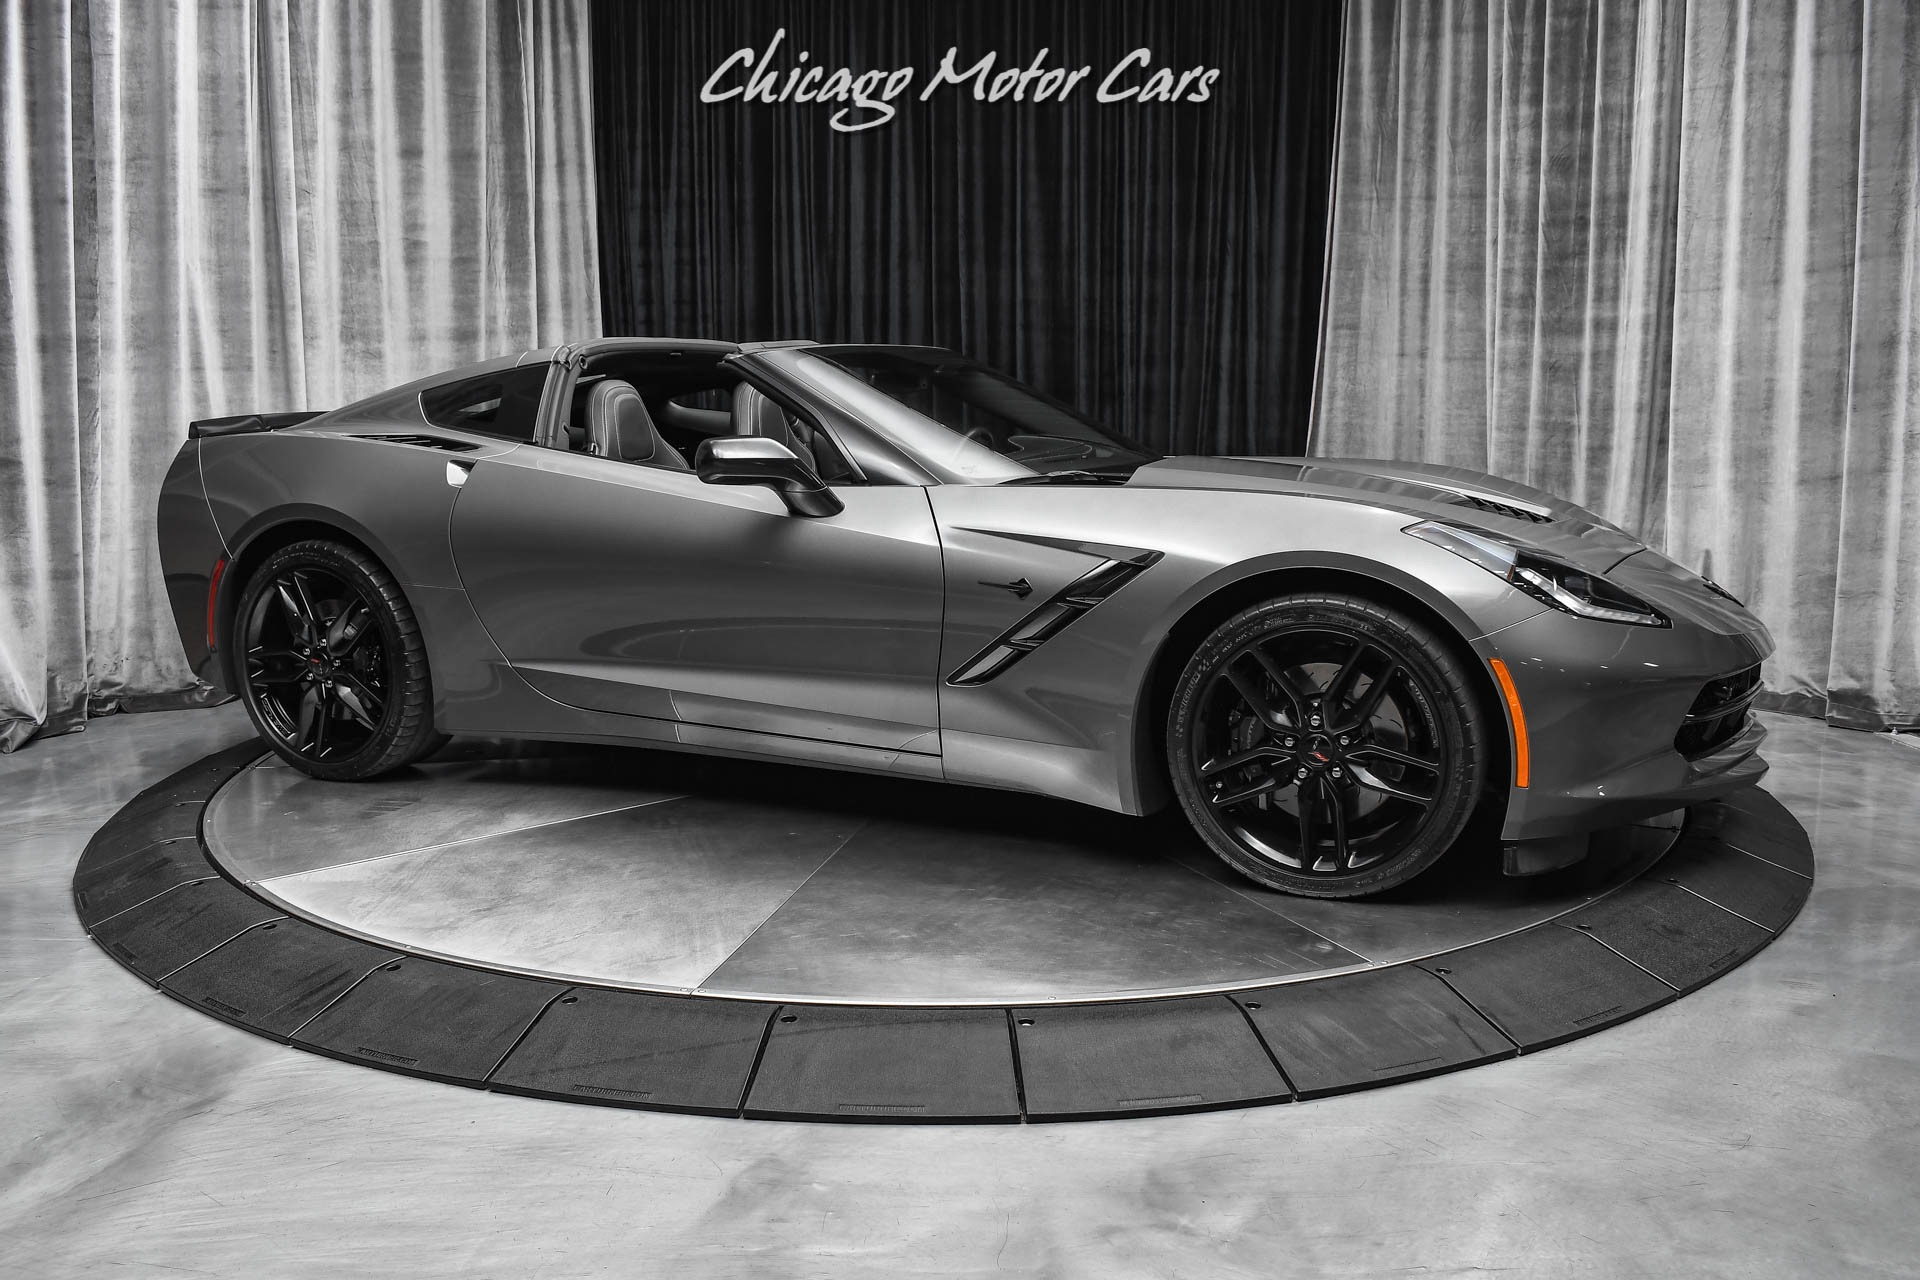 Used-2016-Chevrolet-Corvette-Stingray-Z51-2LT-7-Speed-Manual-Magnetic-Ride-Control